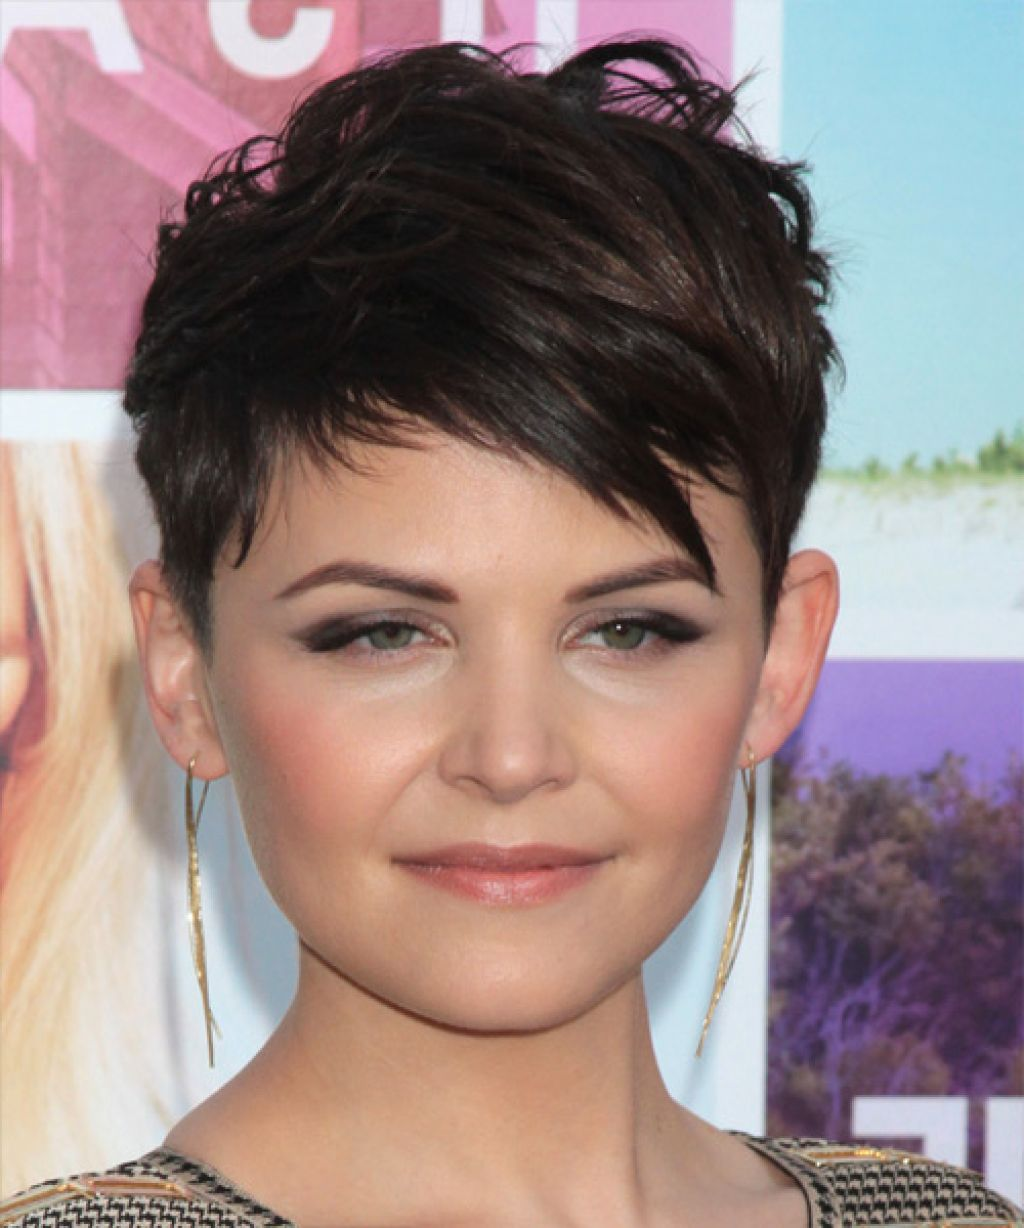 Blonde Pixie Haircut Round Face New Hairstyles Short Hair Styles For Round Faces Short Hair Styles Pixie Hairstyles